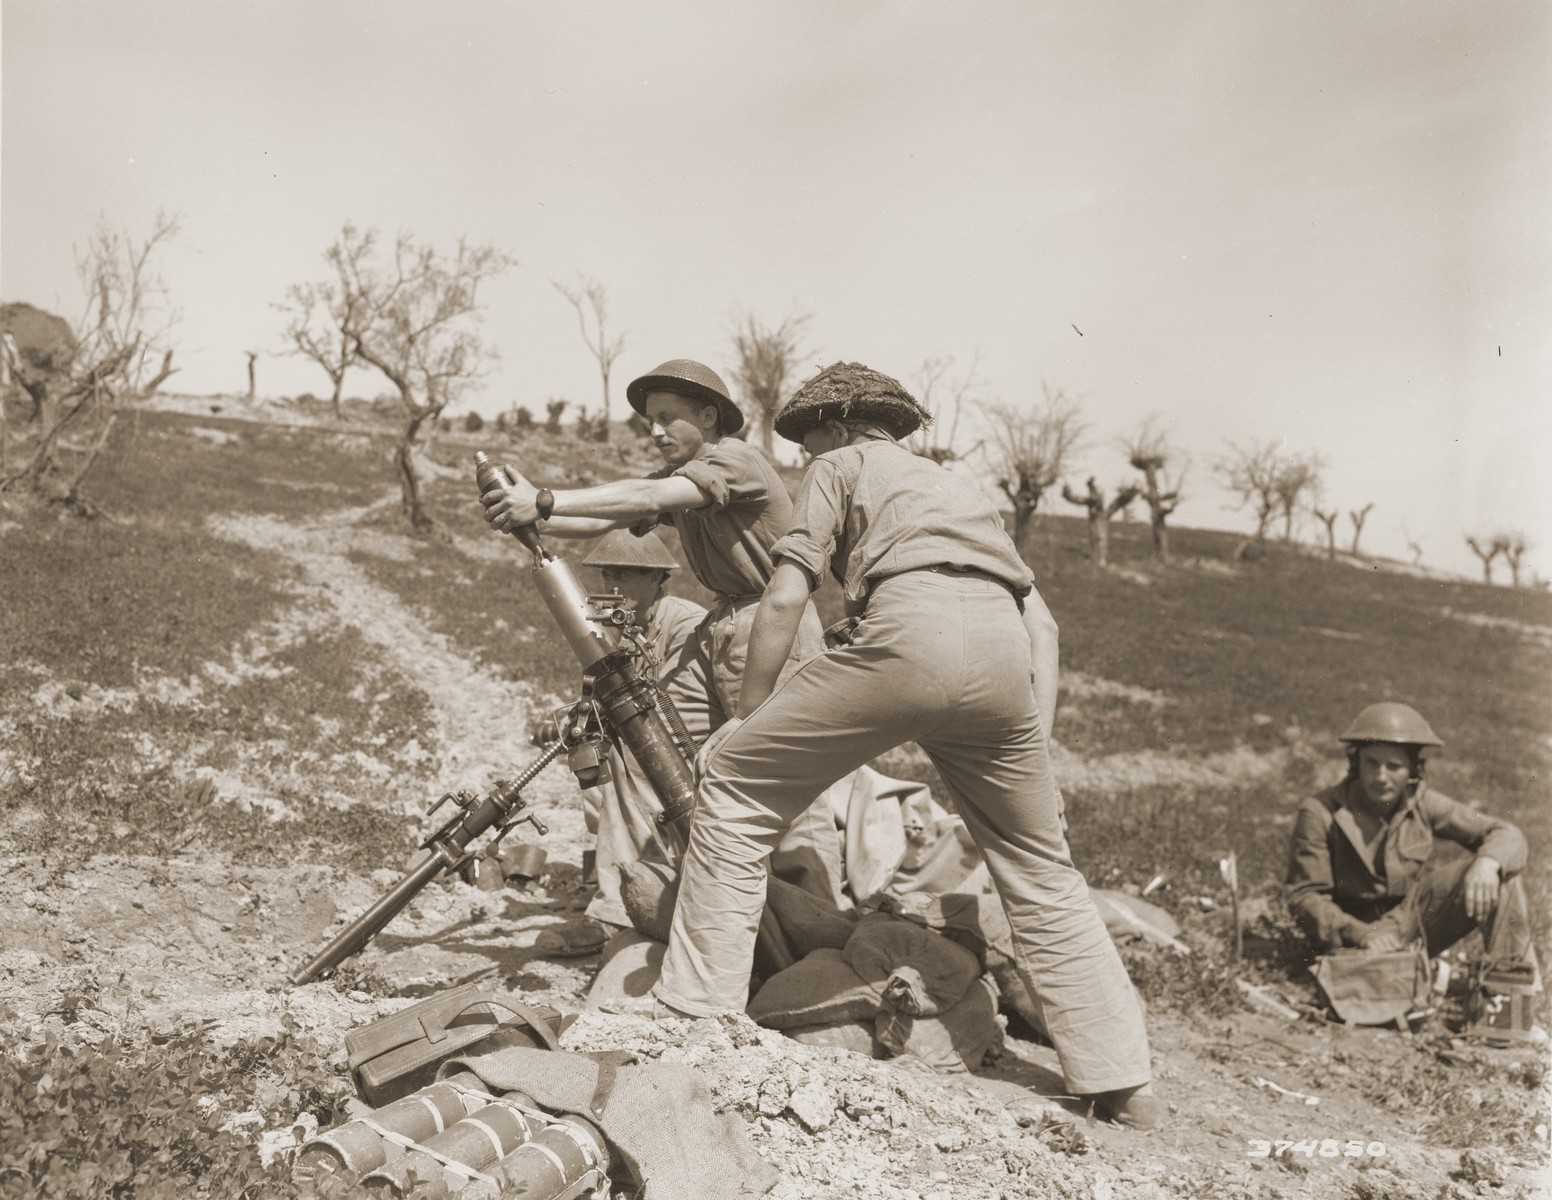 Three Inch Mortar Crew of the Jewish Brigade prepare to open fire.